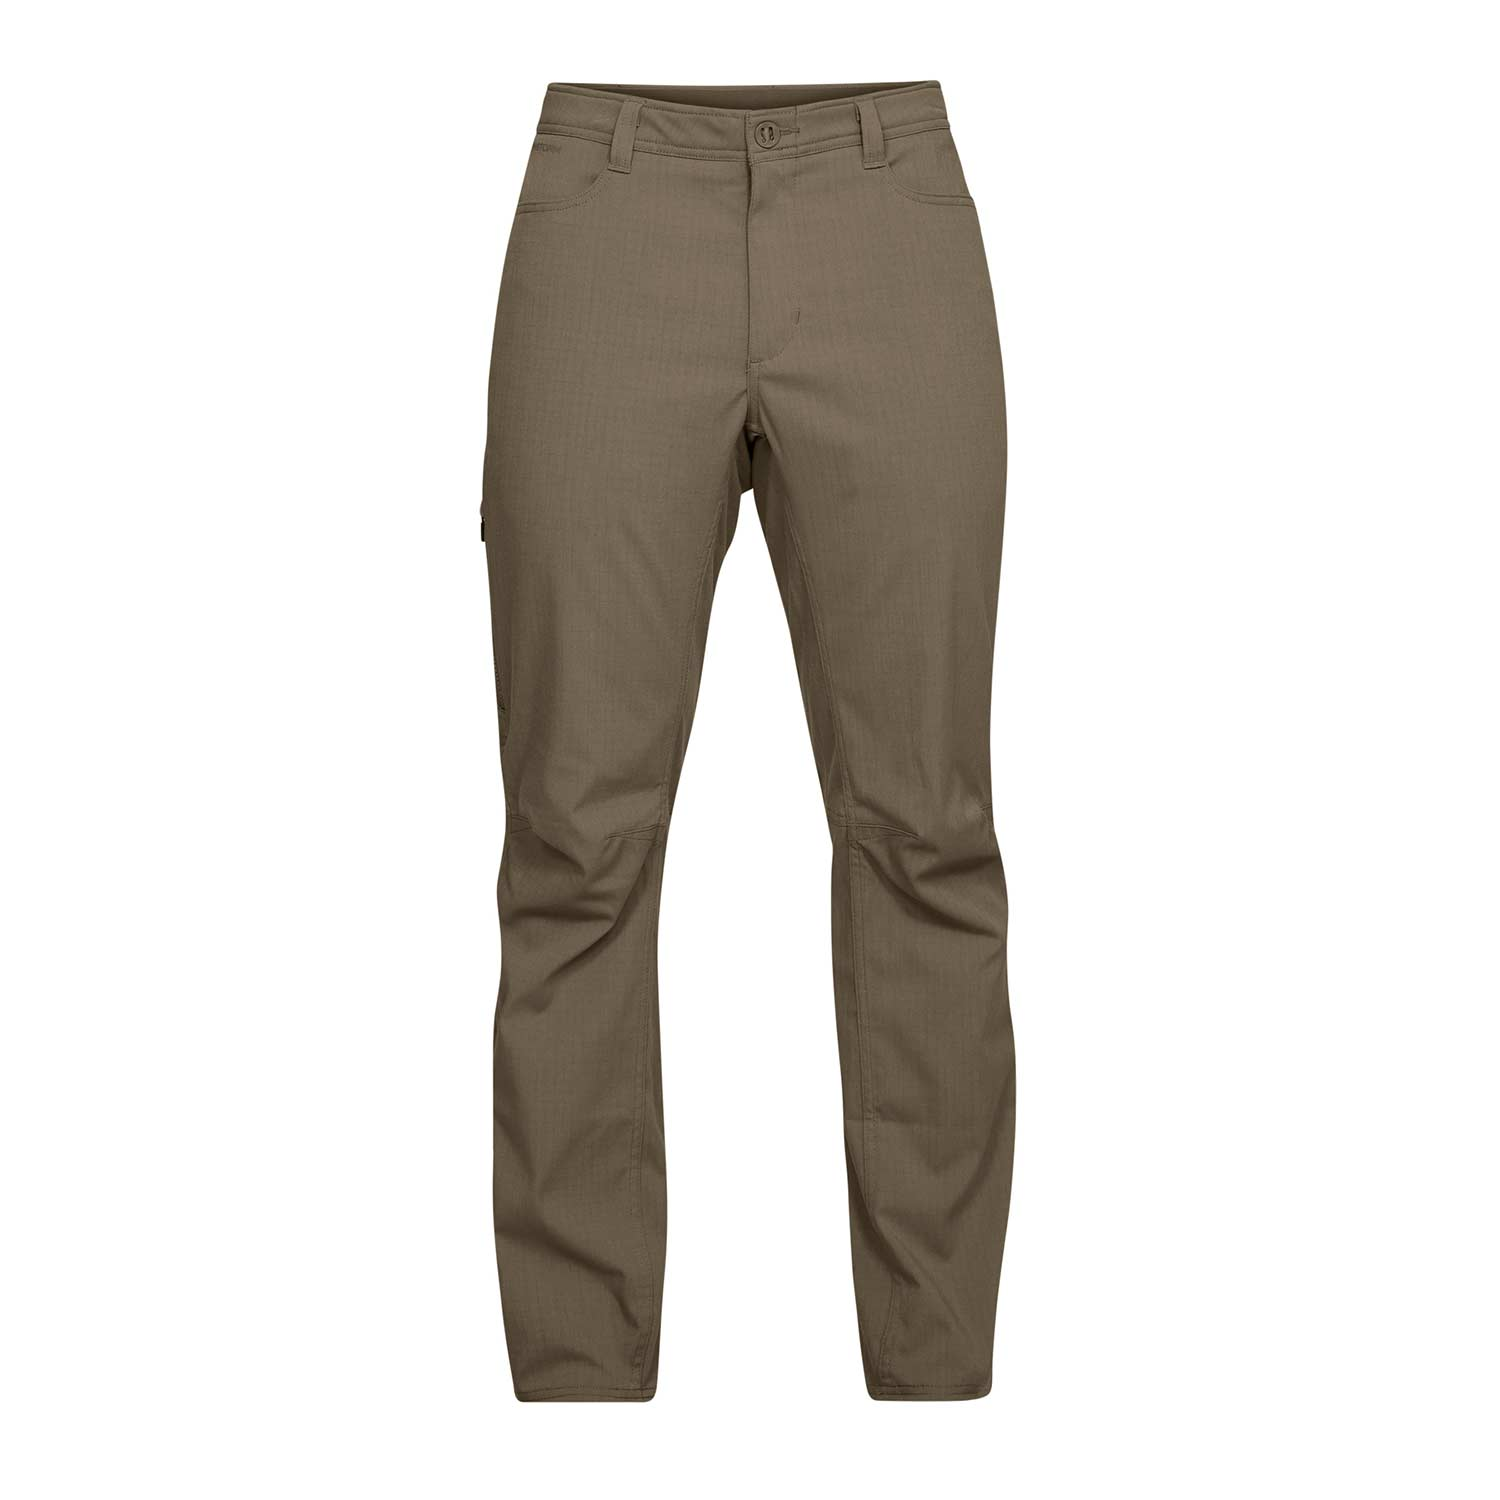 Under Armour Enduro Tactical Pants